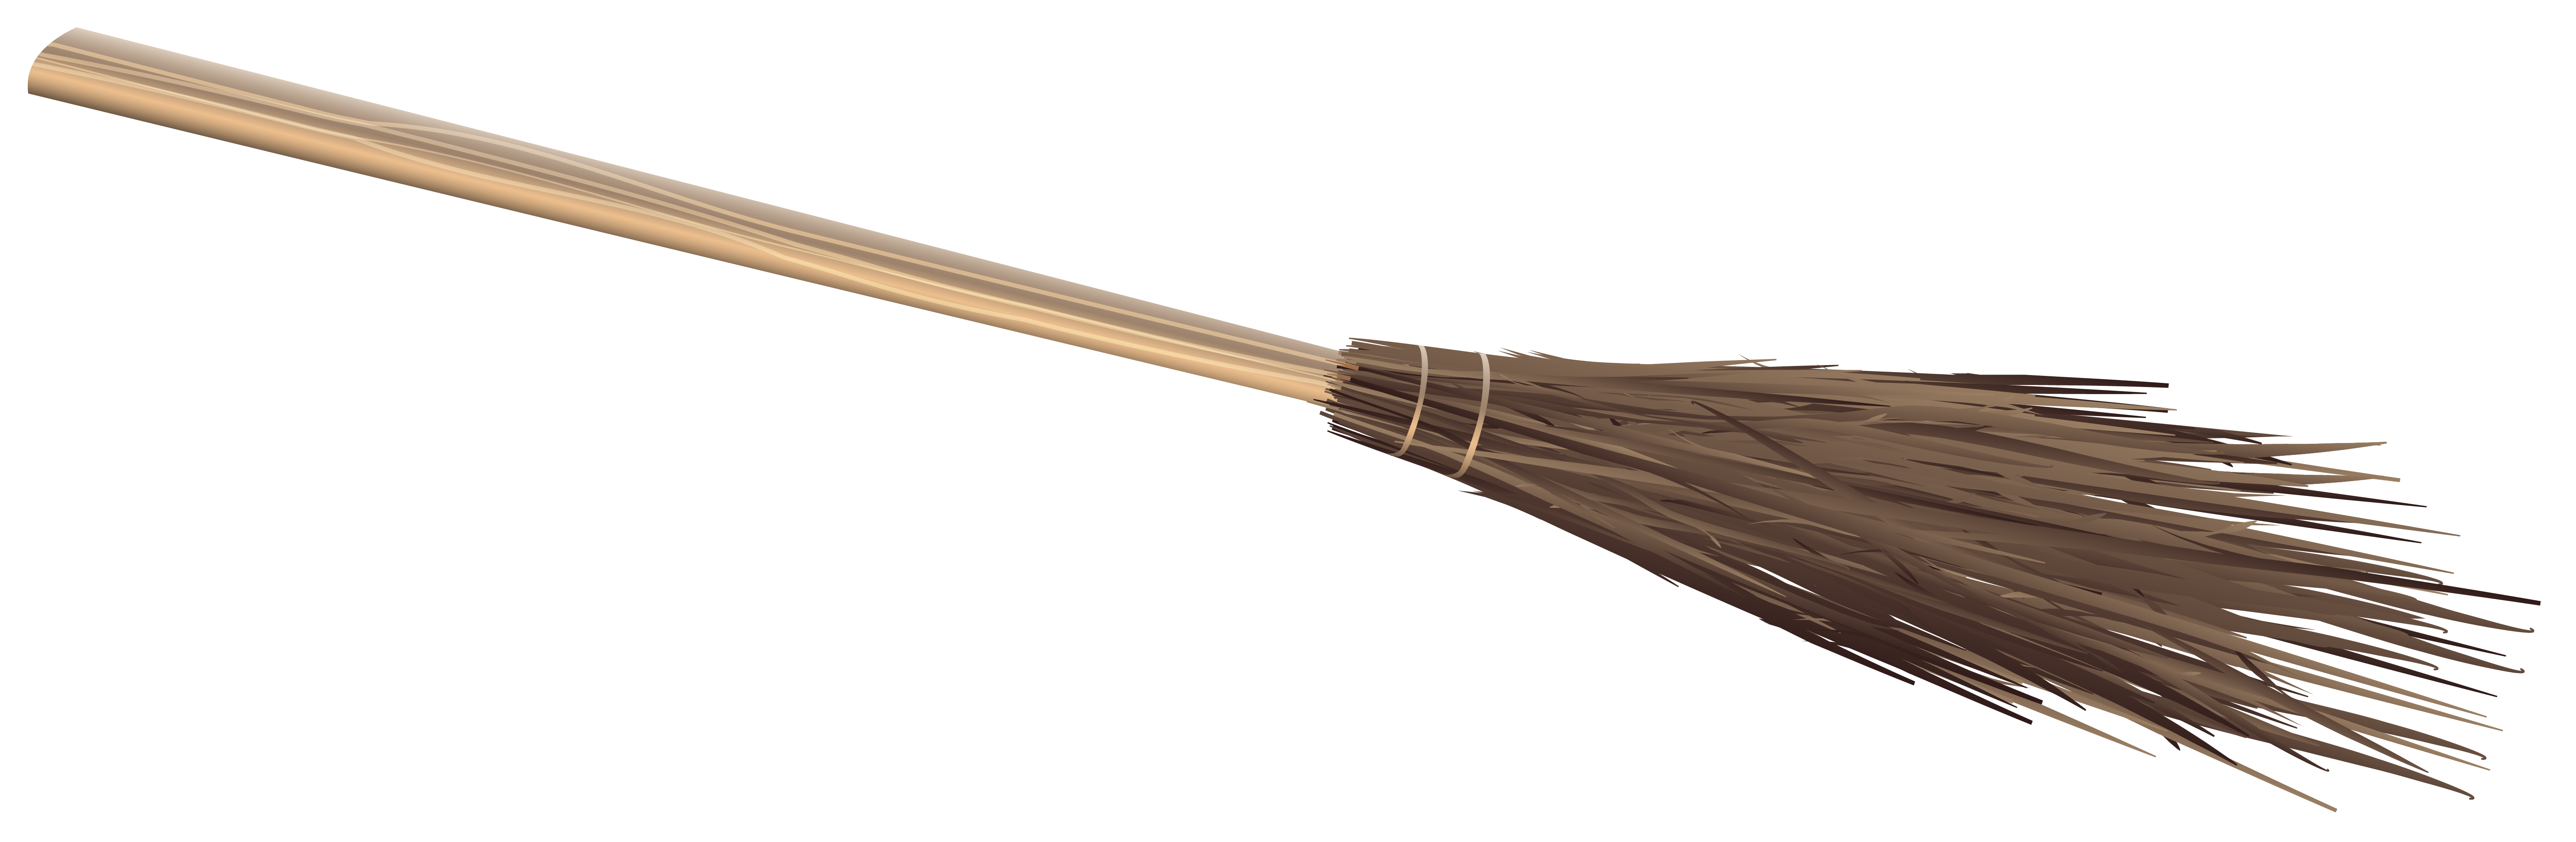 broom .png